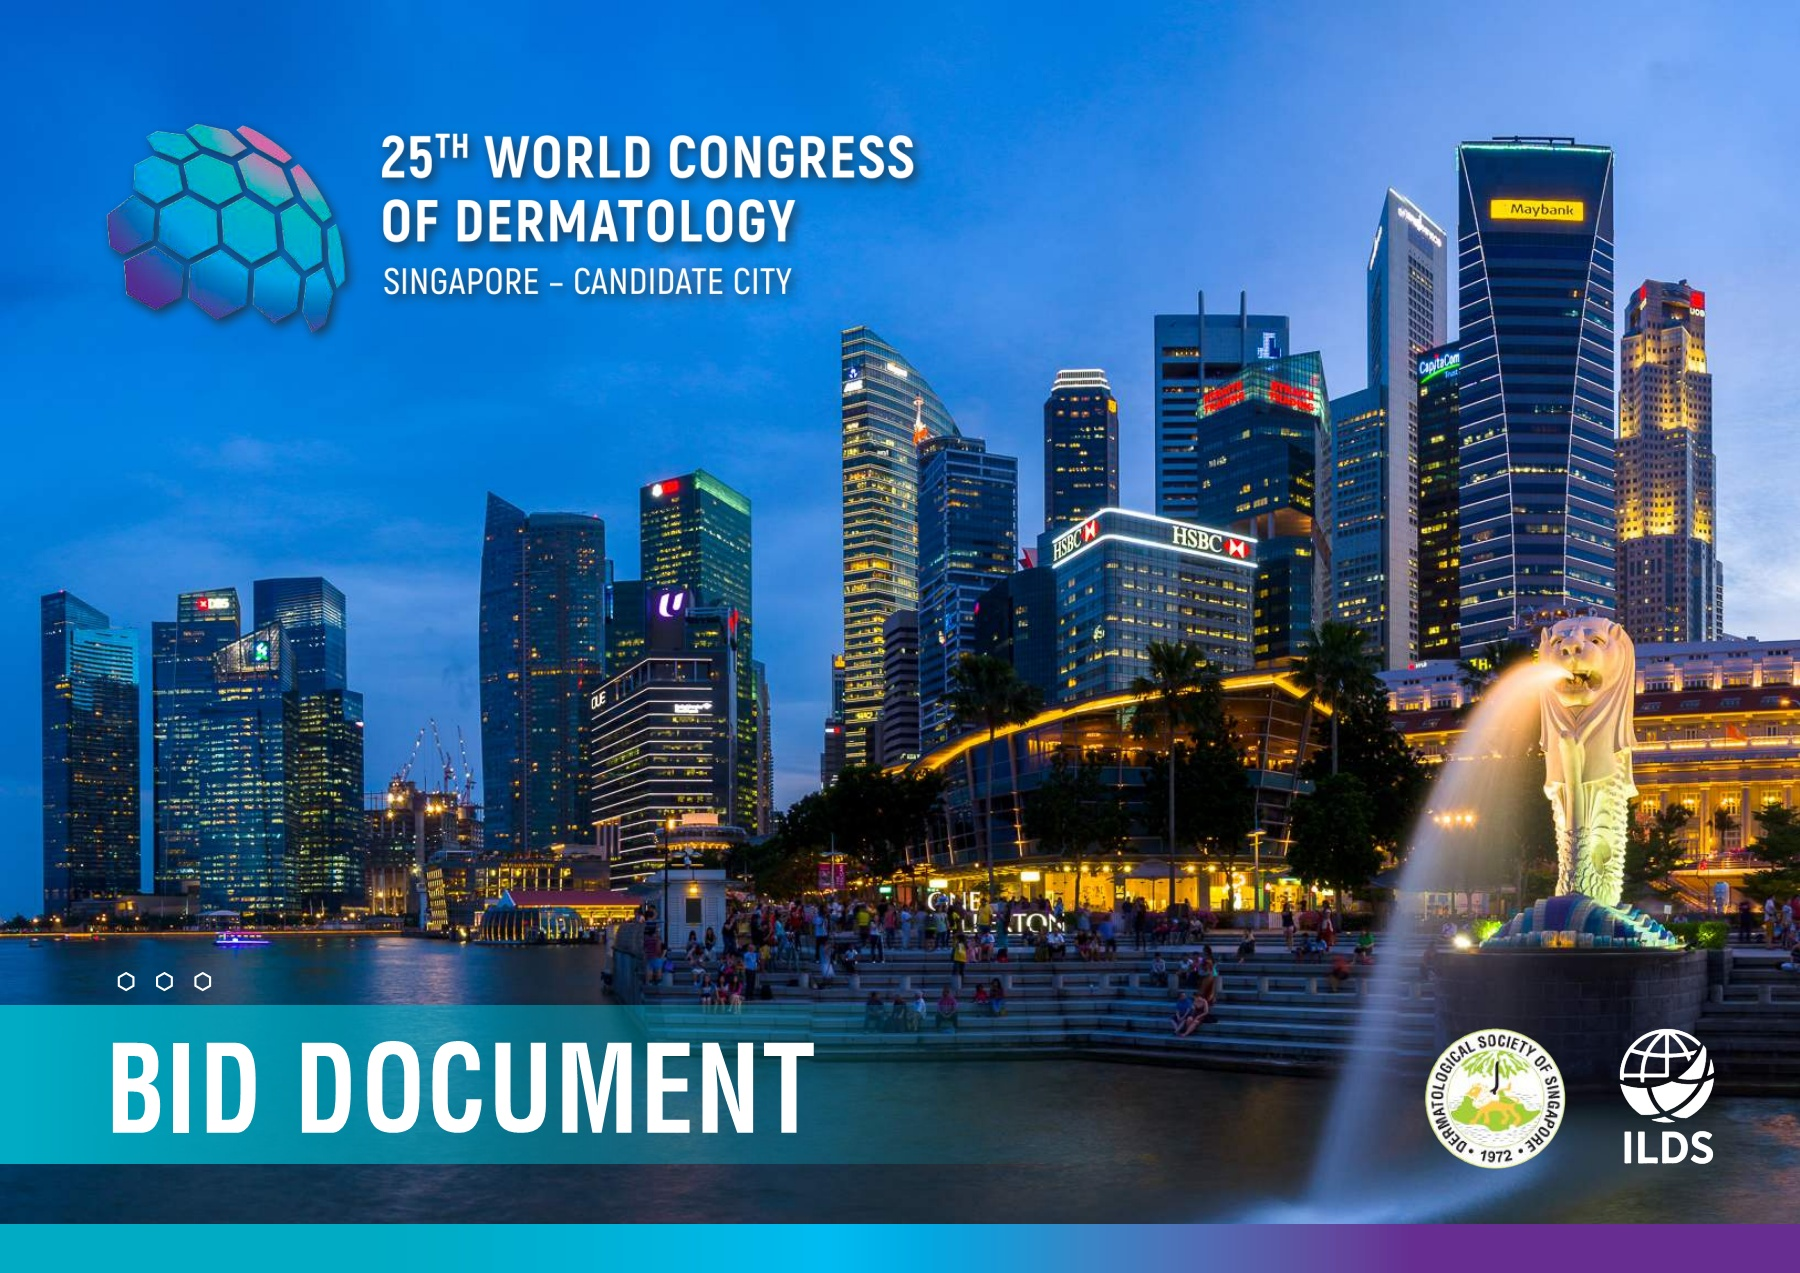 WCD 2023 Singapore Bid Document Pages 1 - 36 - Text Version